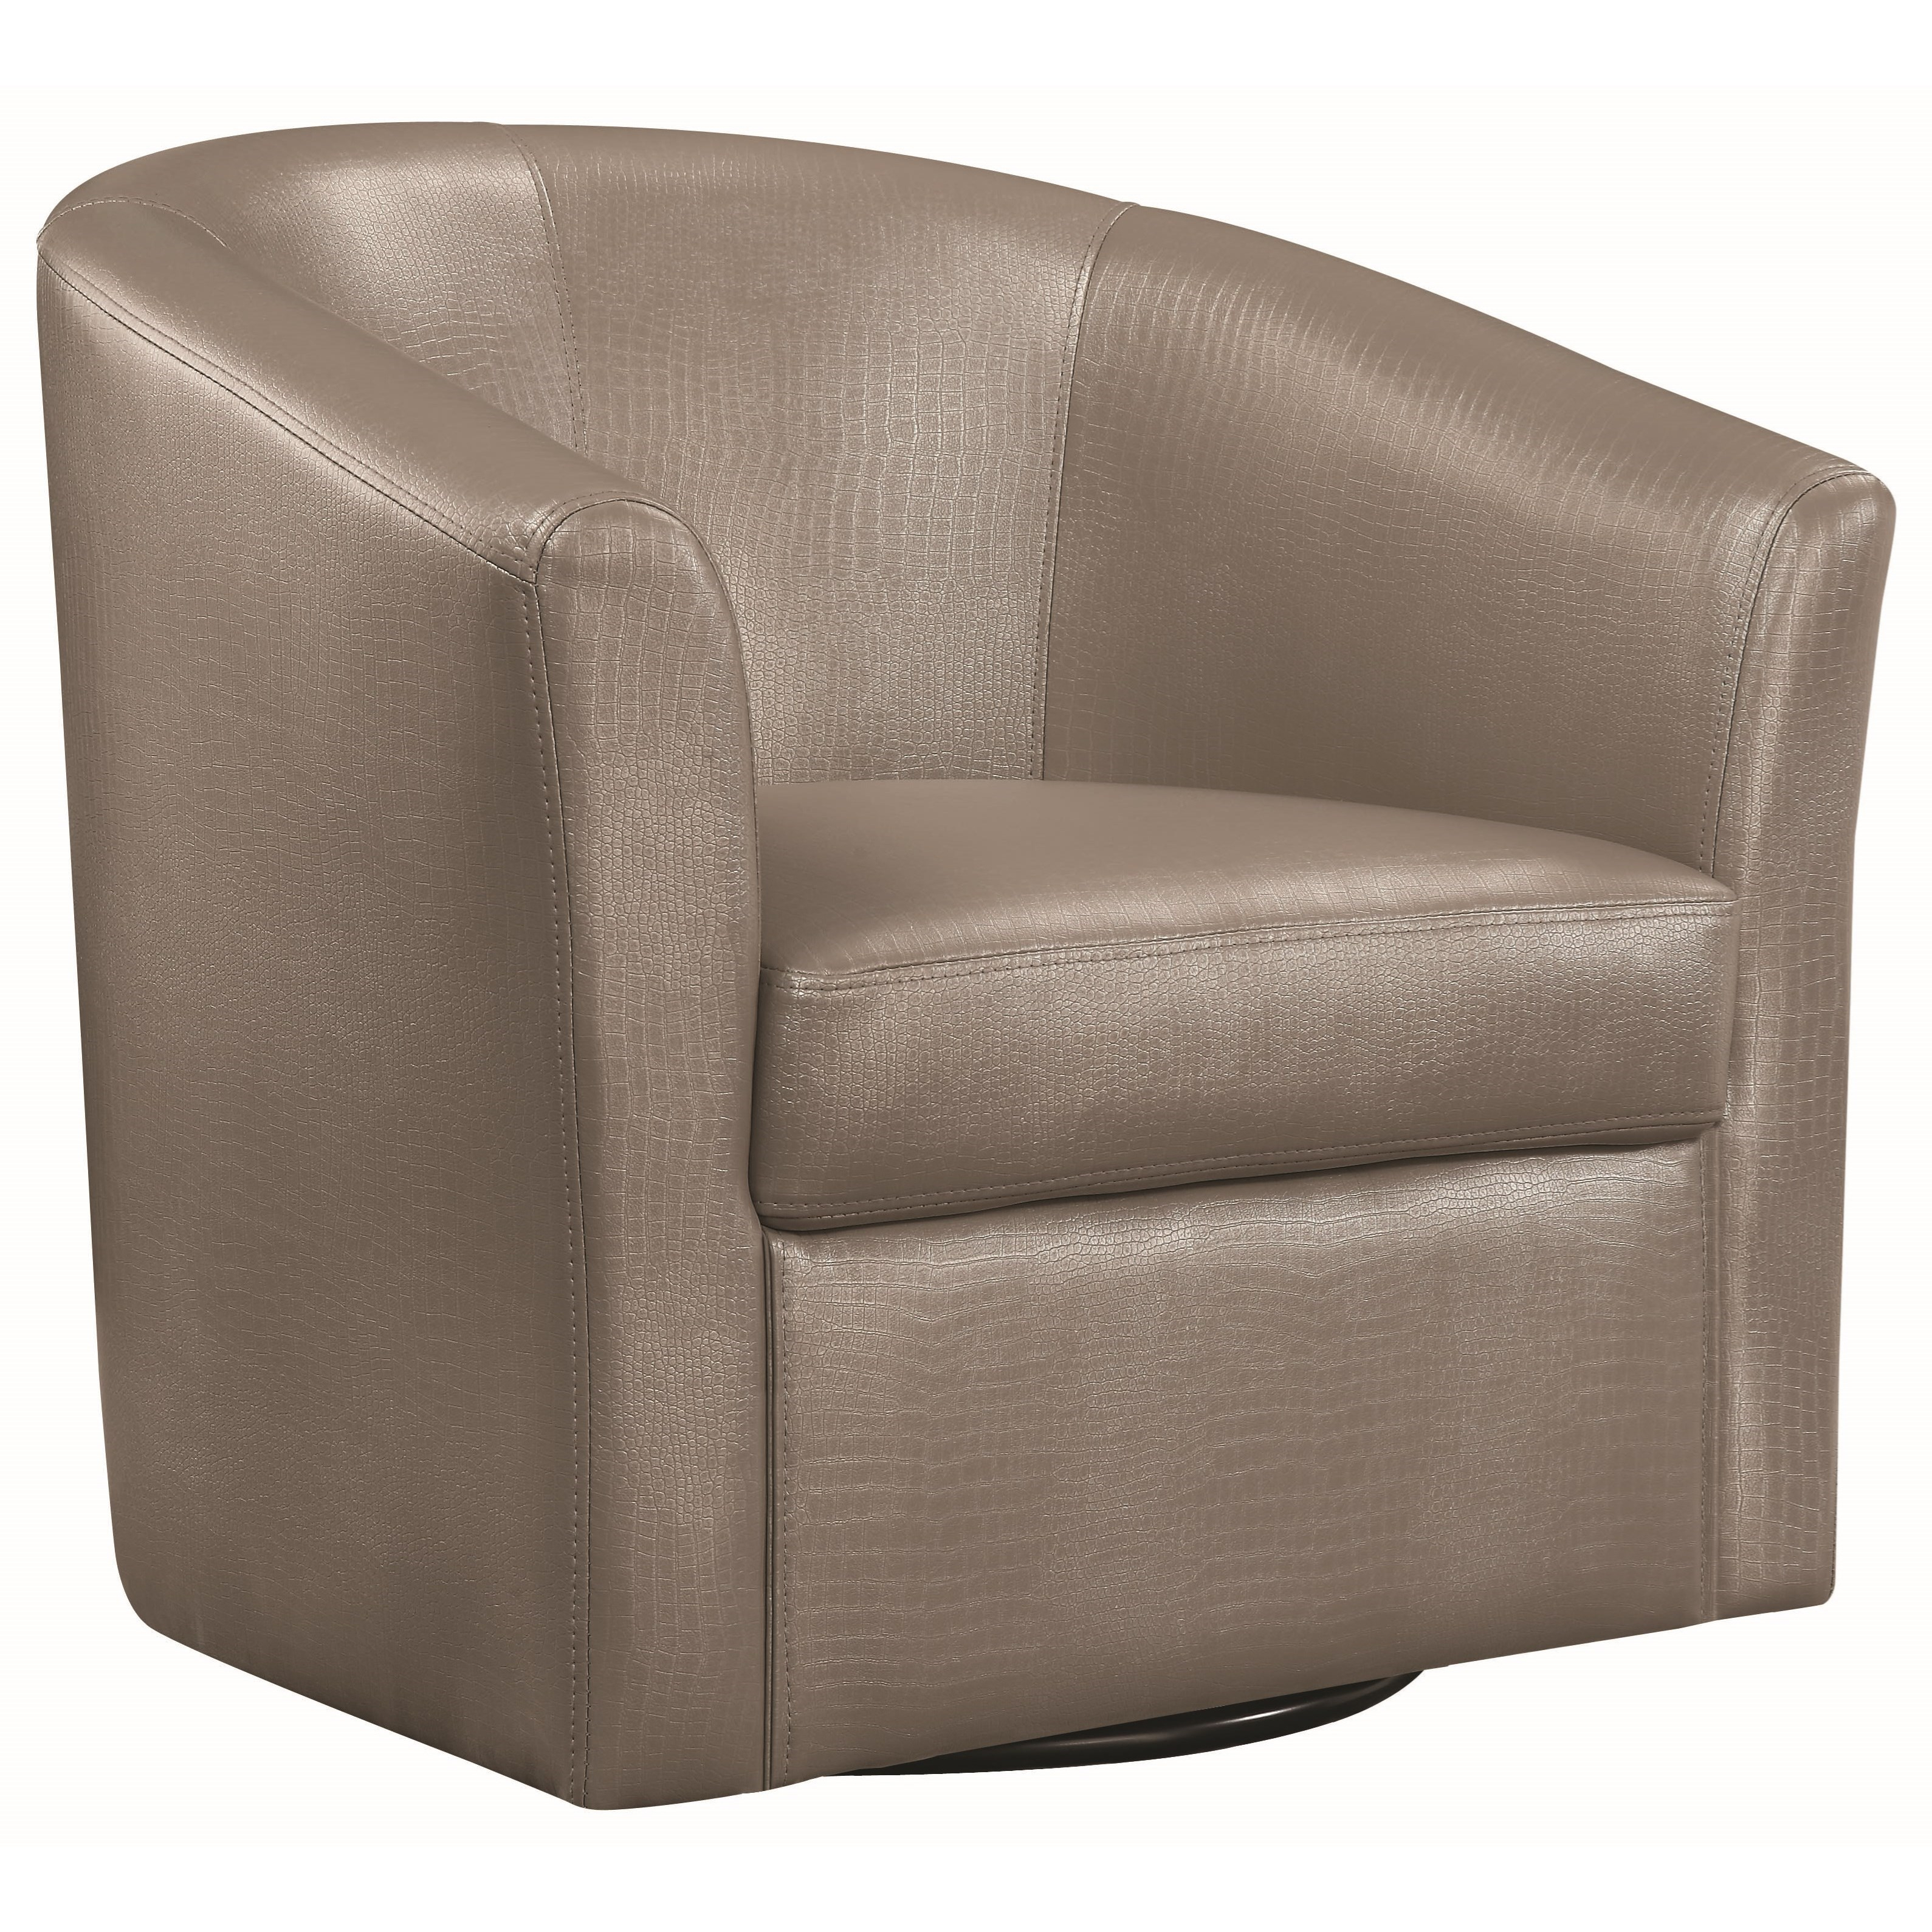 Coaster Accent Seating Contemporary Styled Accent Swivel Chair Inside Umber Grey Swivel Accent Chairs (Image 7 of 20)